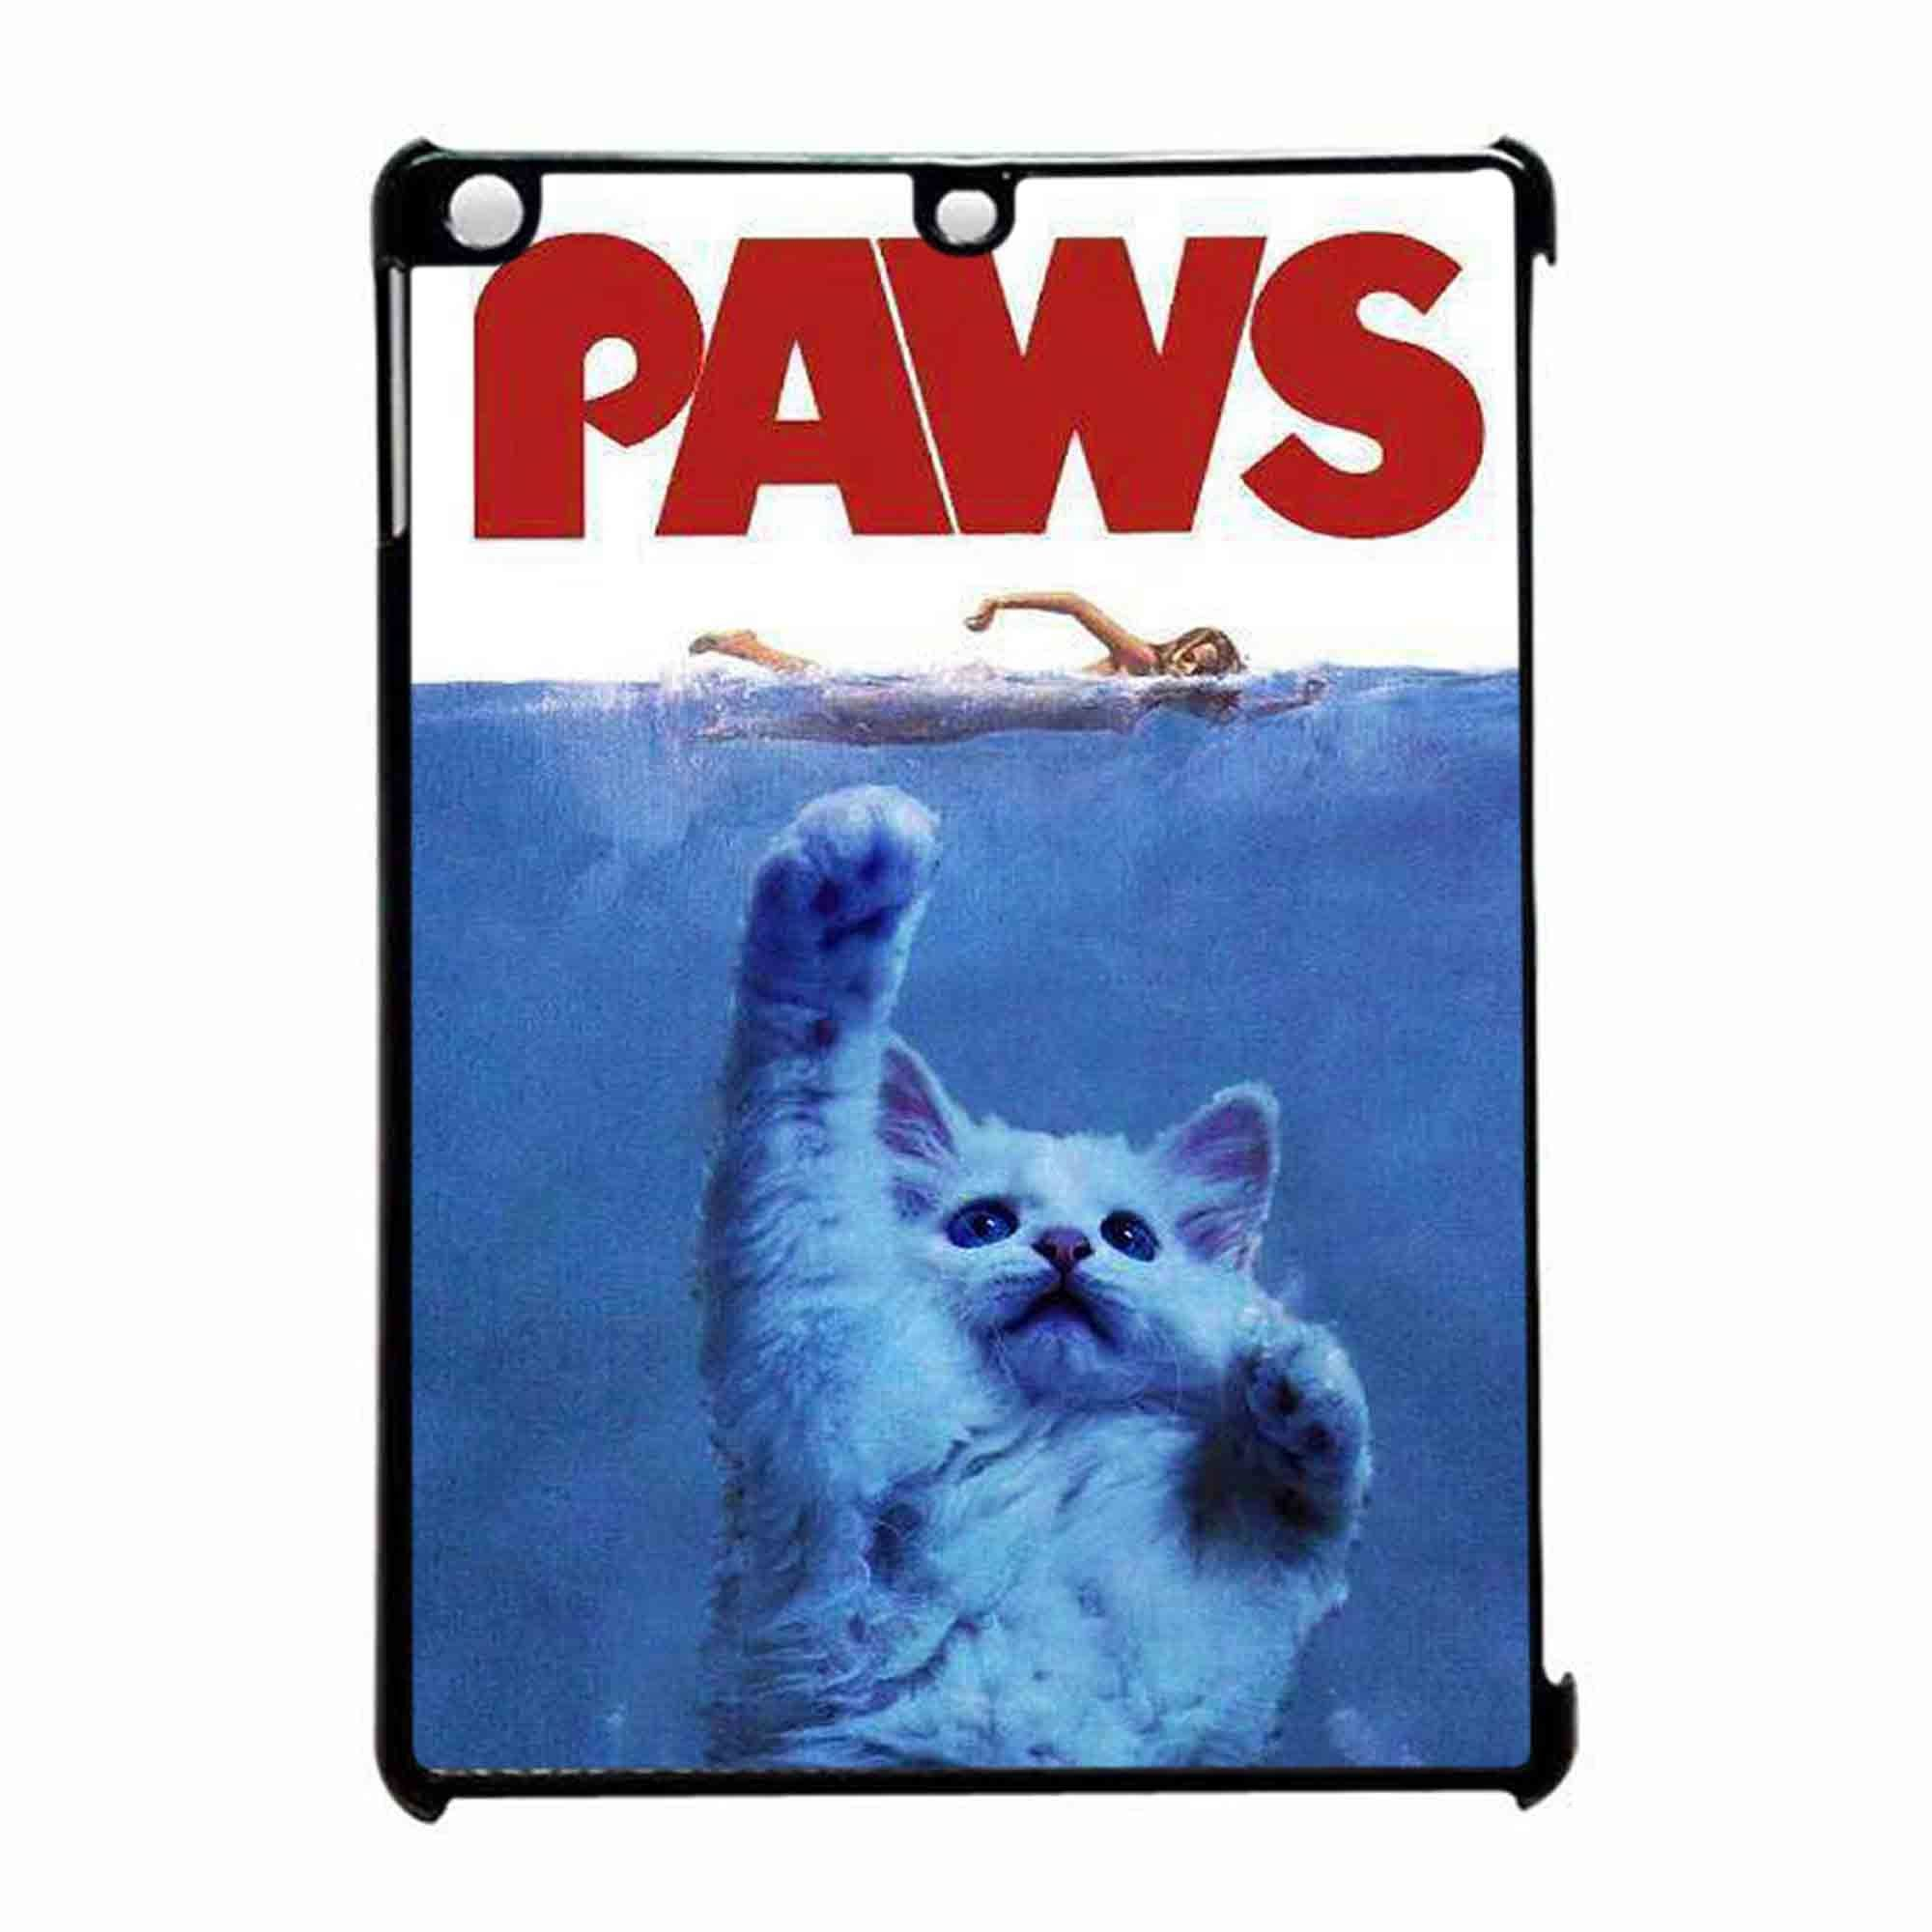 Paws Jaws Parody Funny Cat Attack iPad Air Case animals